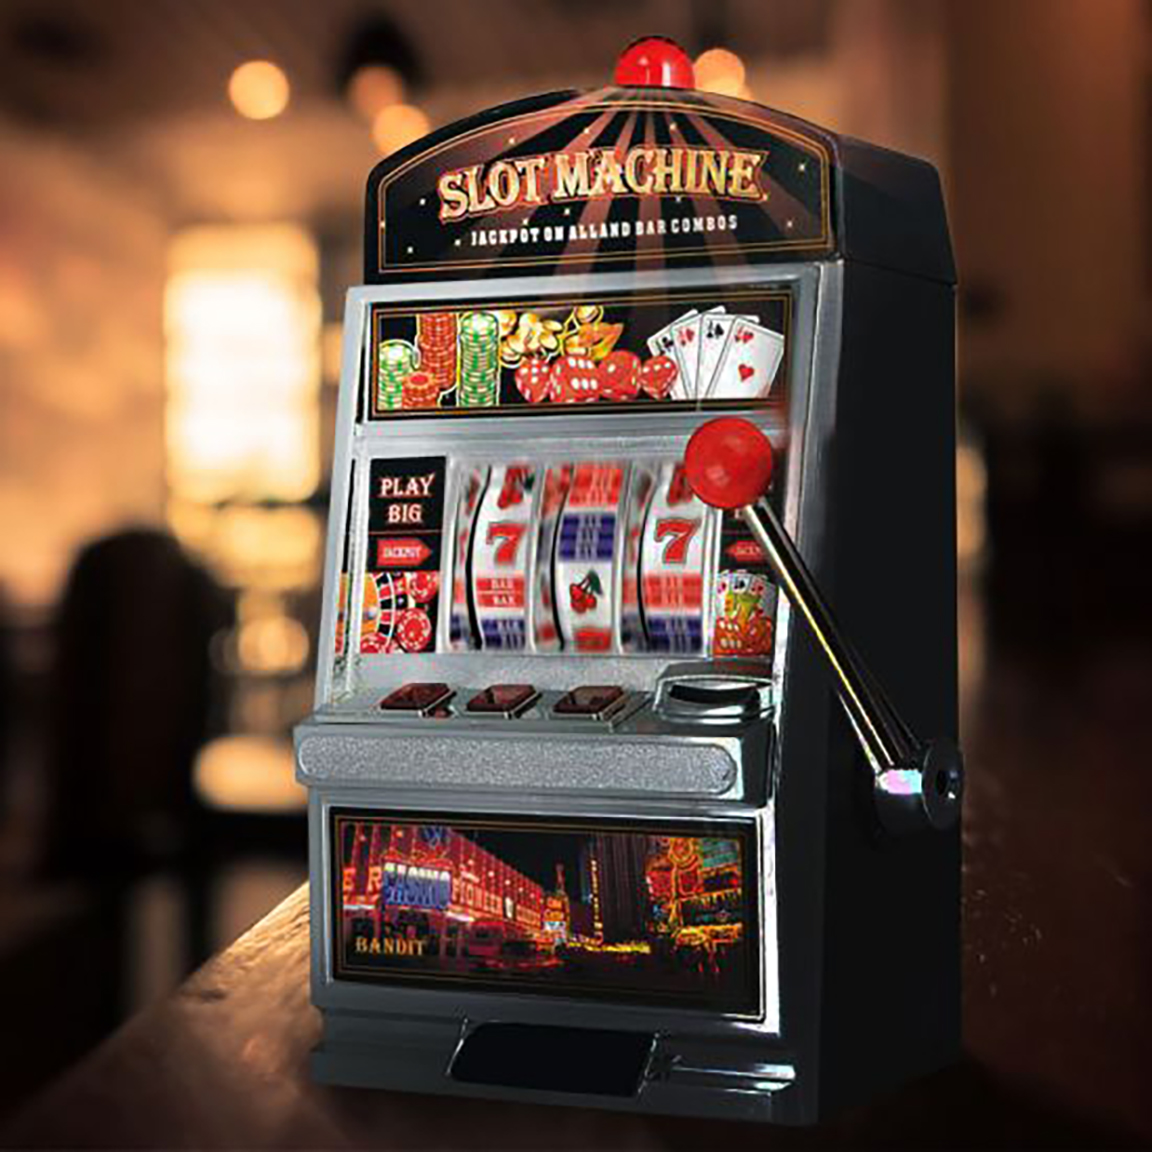 Come truffare slot machine